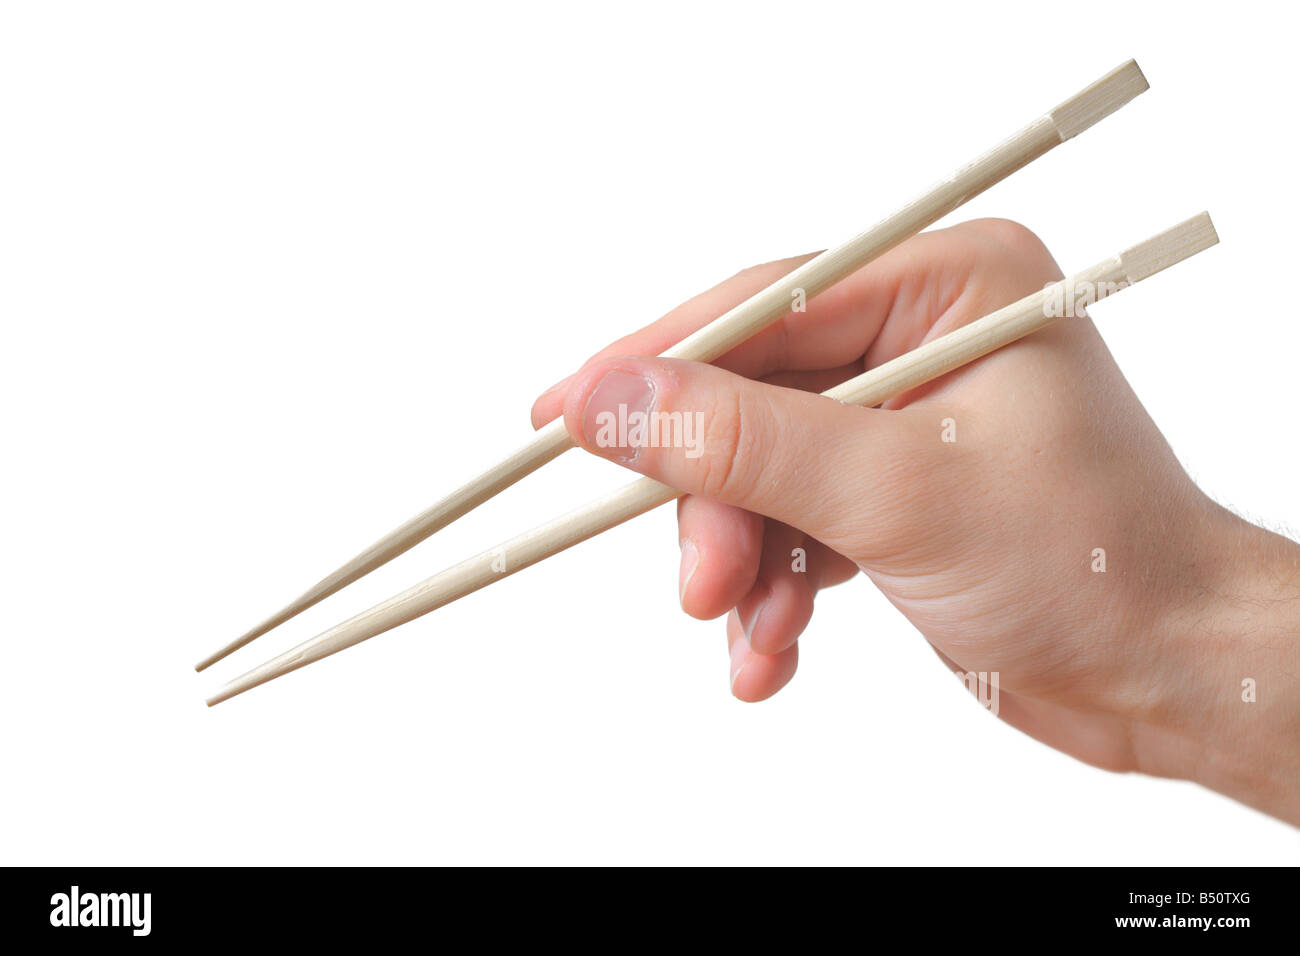 How to Hold Chopsticks How to Hold Chopsticks new pictures